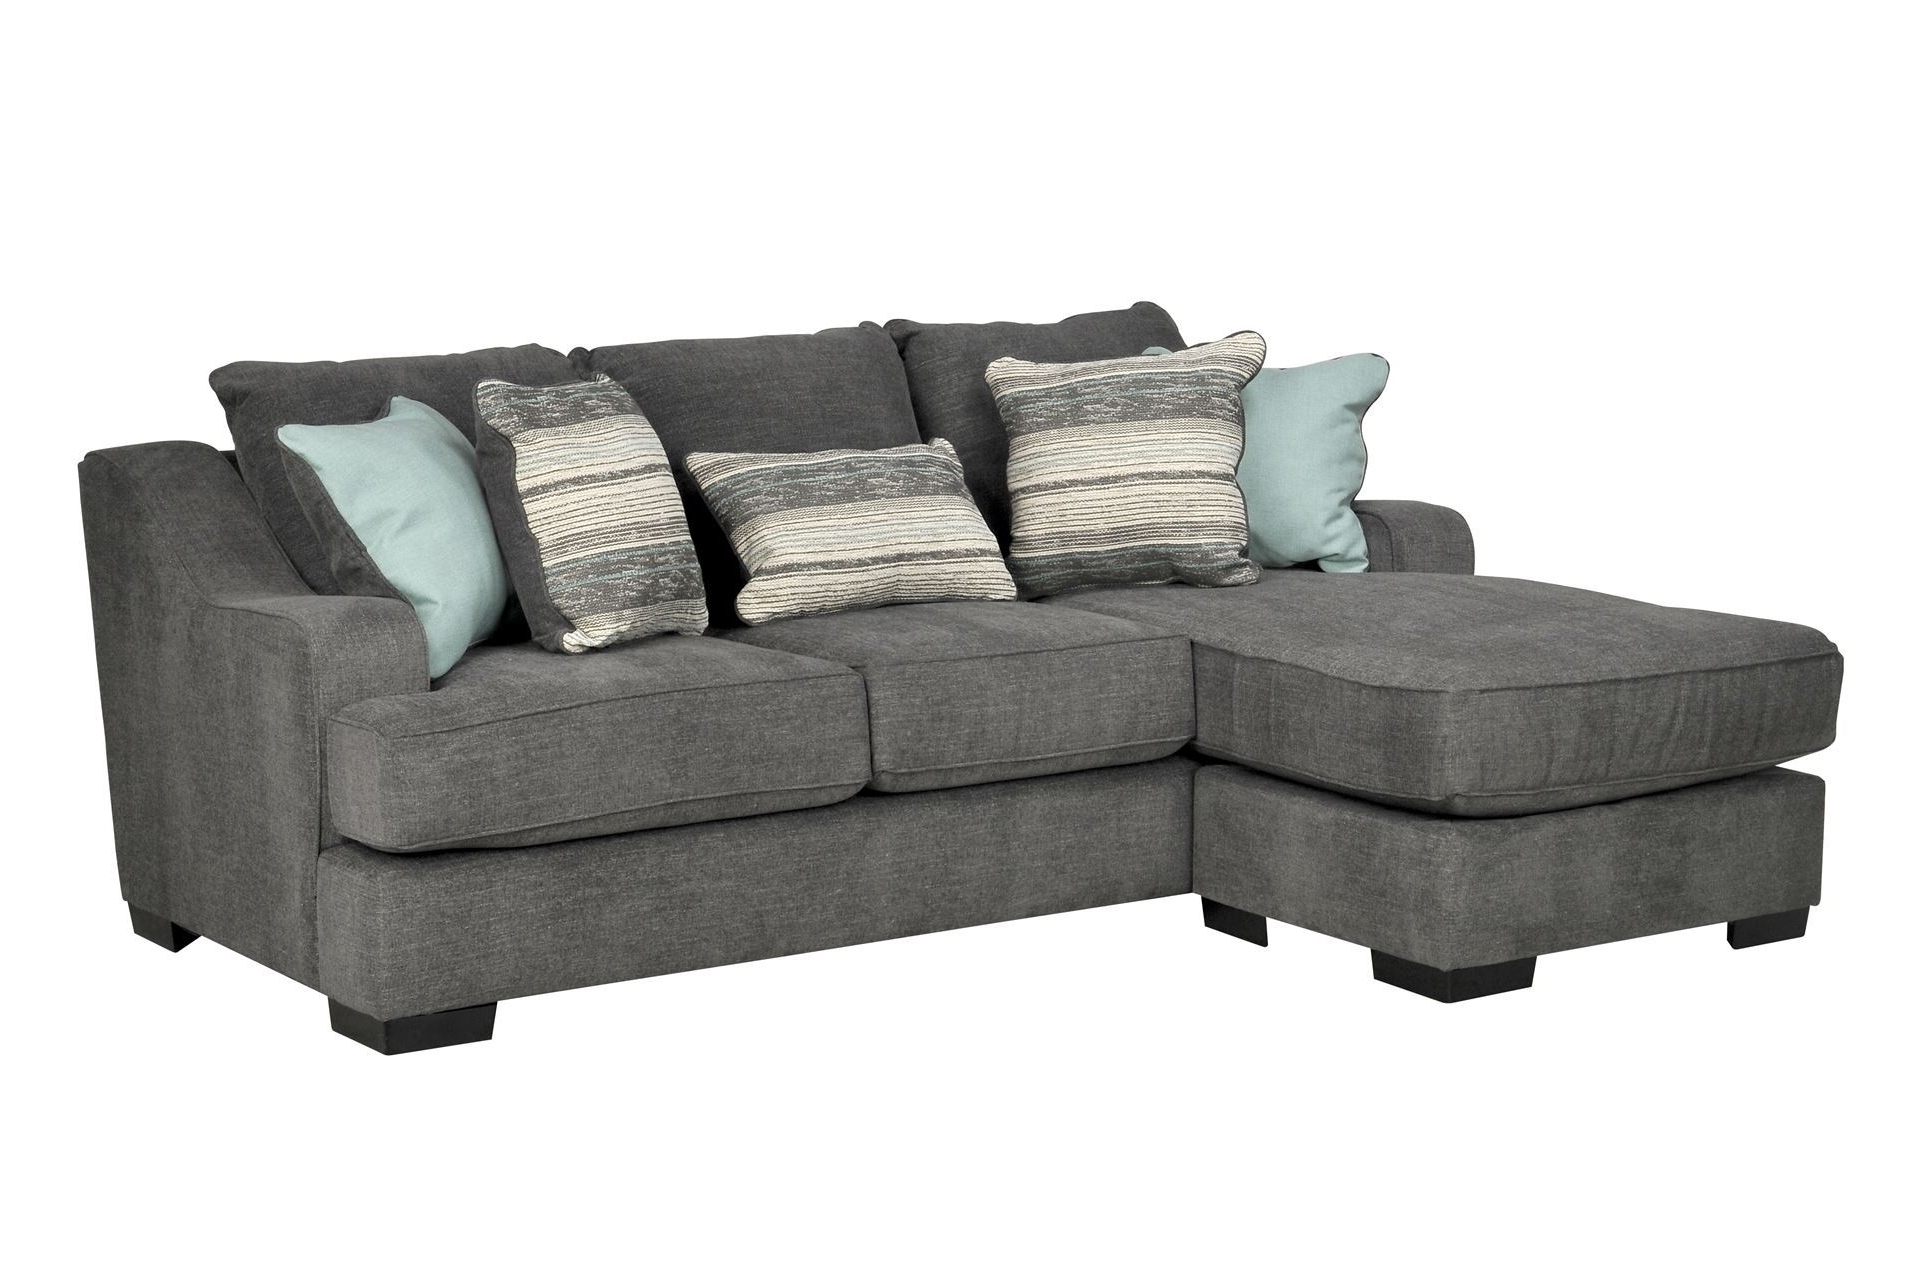 Favorite Grey Sofas With Chaise Inside Sofa Design Ideas: Dark Couch Grey Sofa Chaise Light Design Light (View 3 of 15)